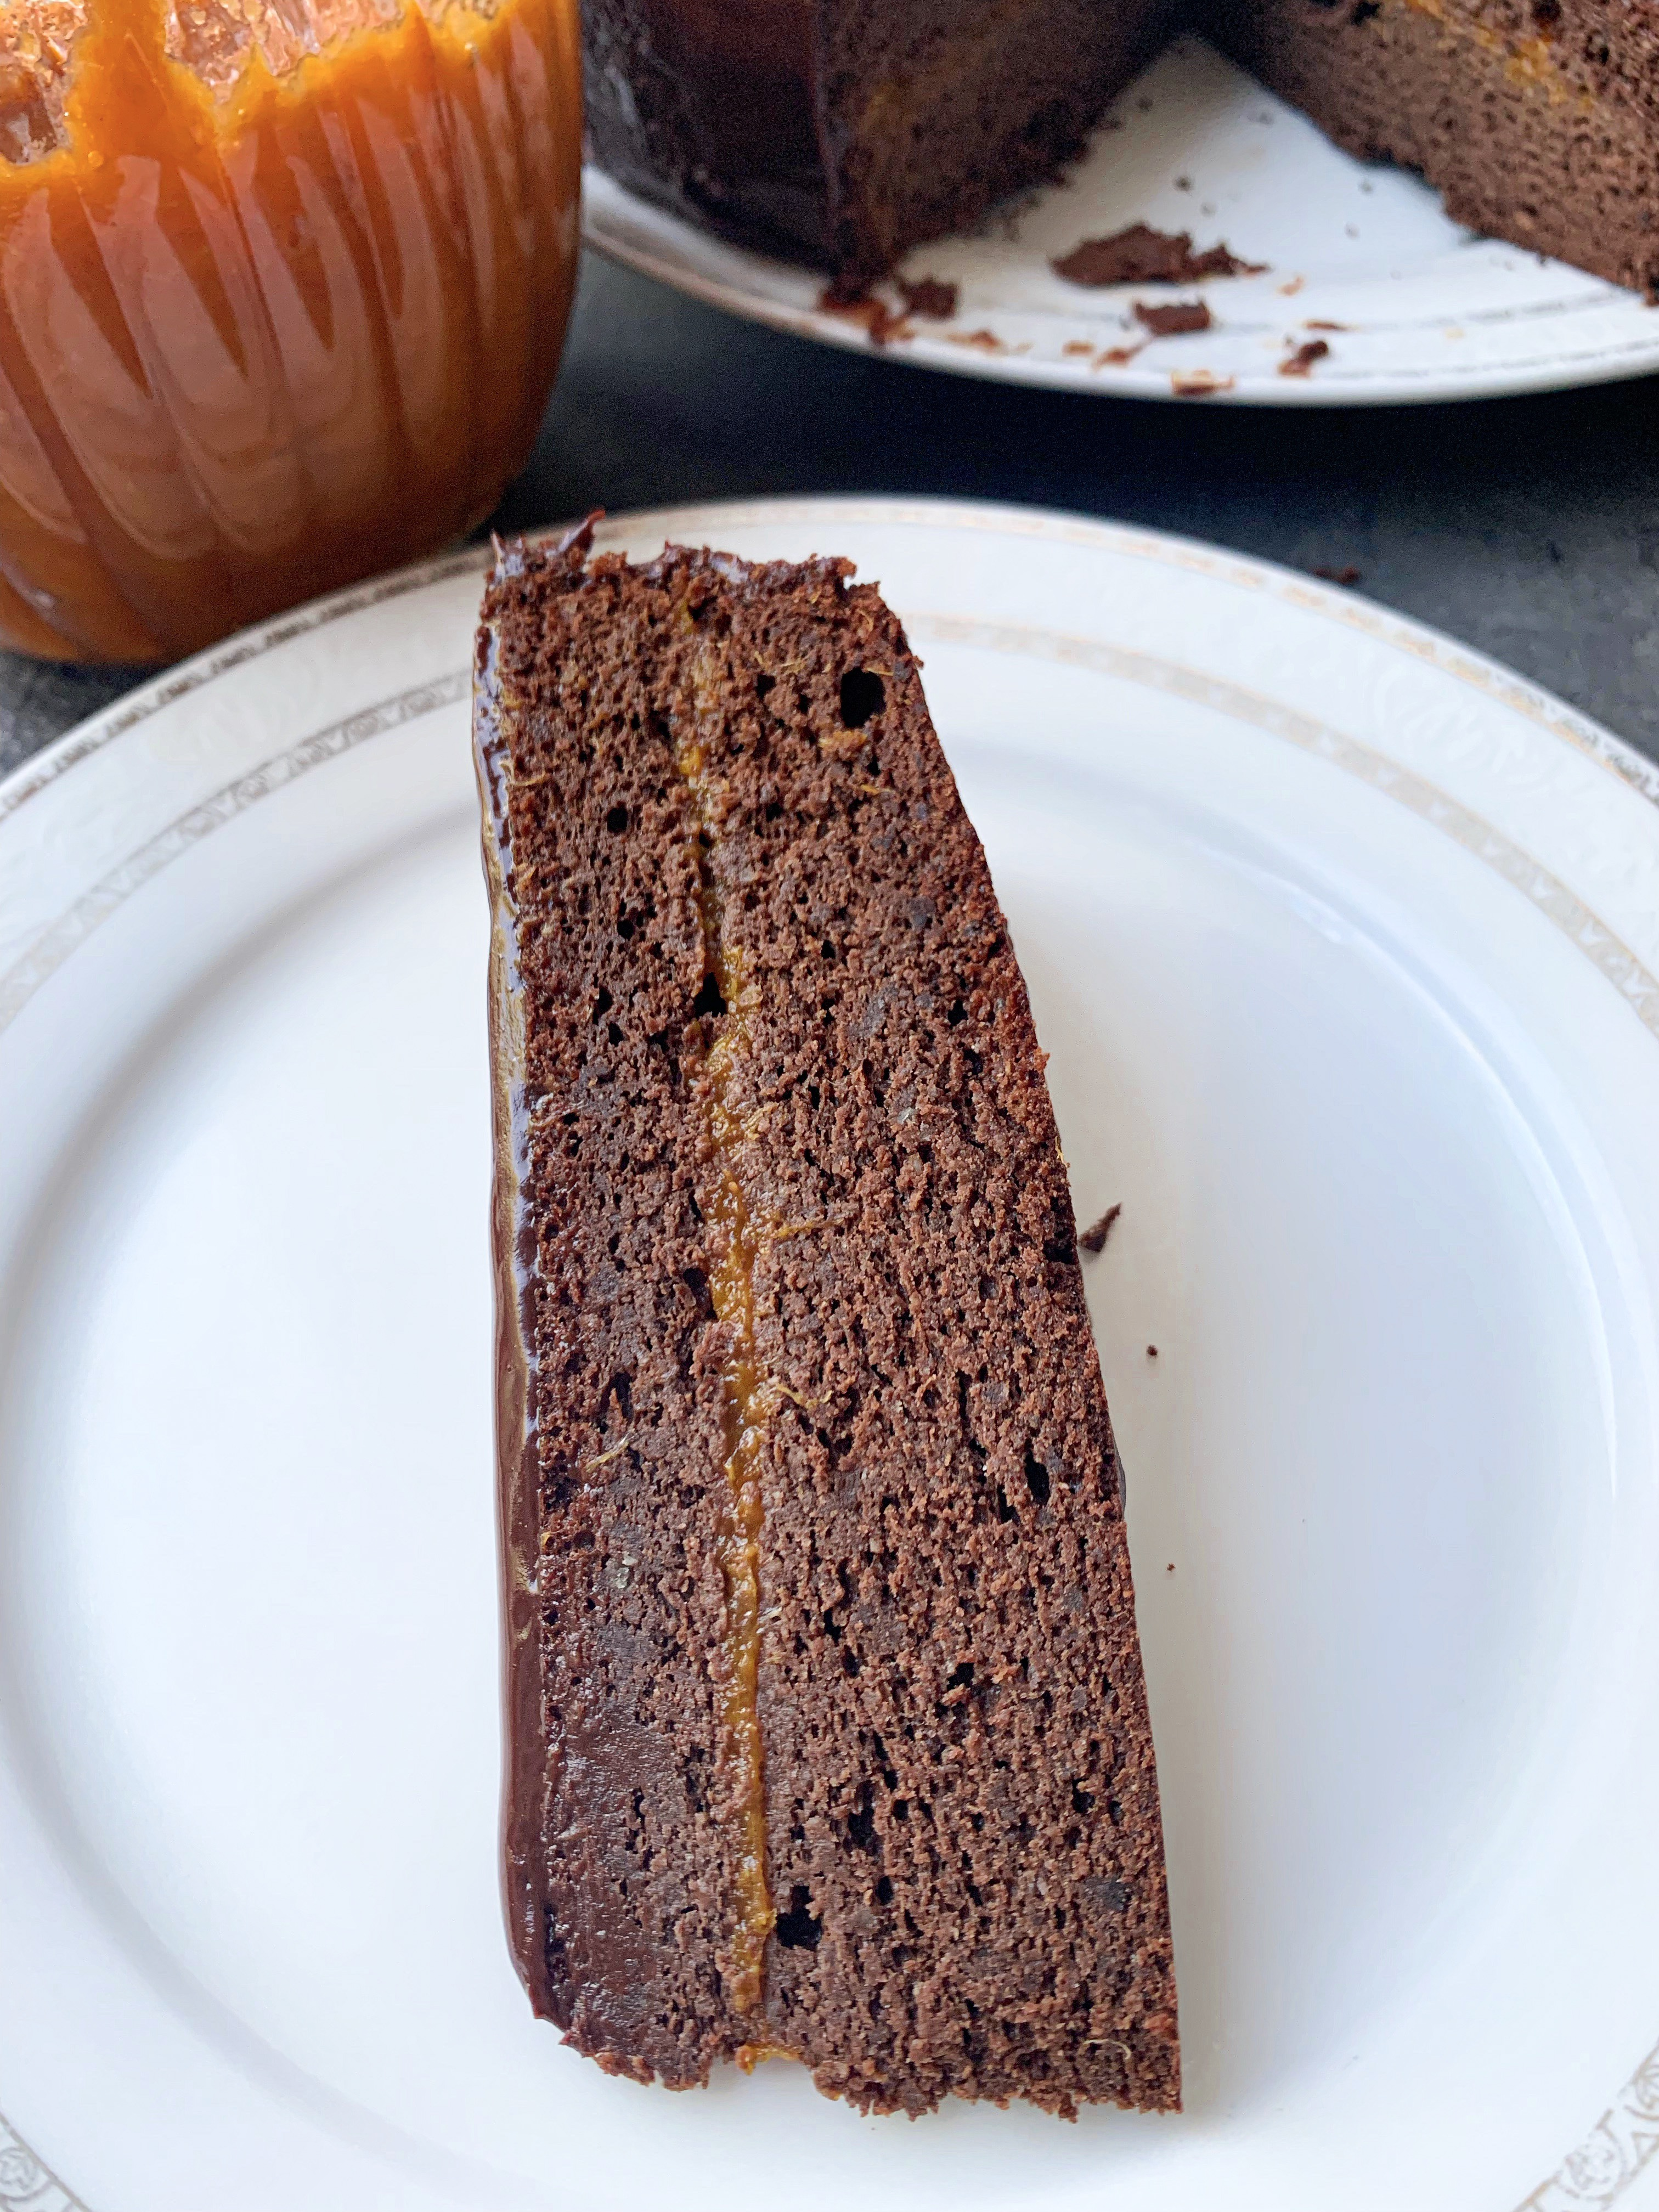 Picture of a slice of keto chocolate flourless Sacher cake